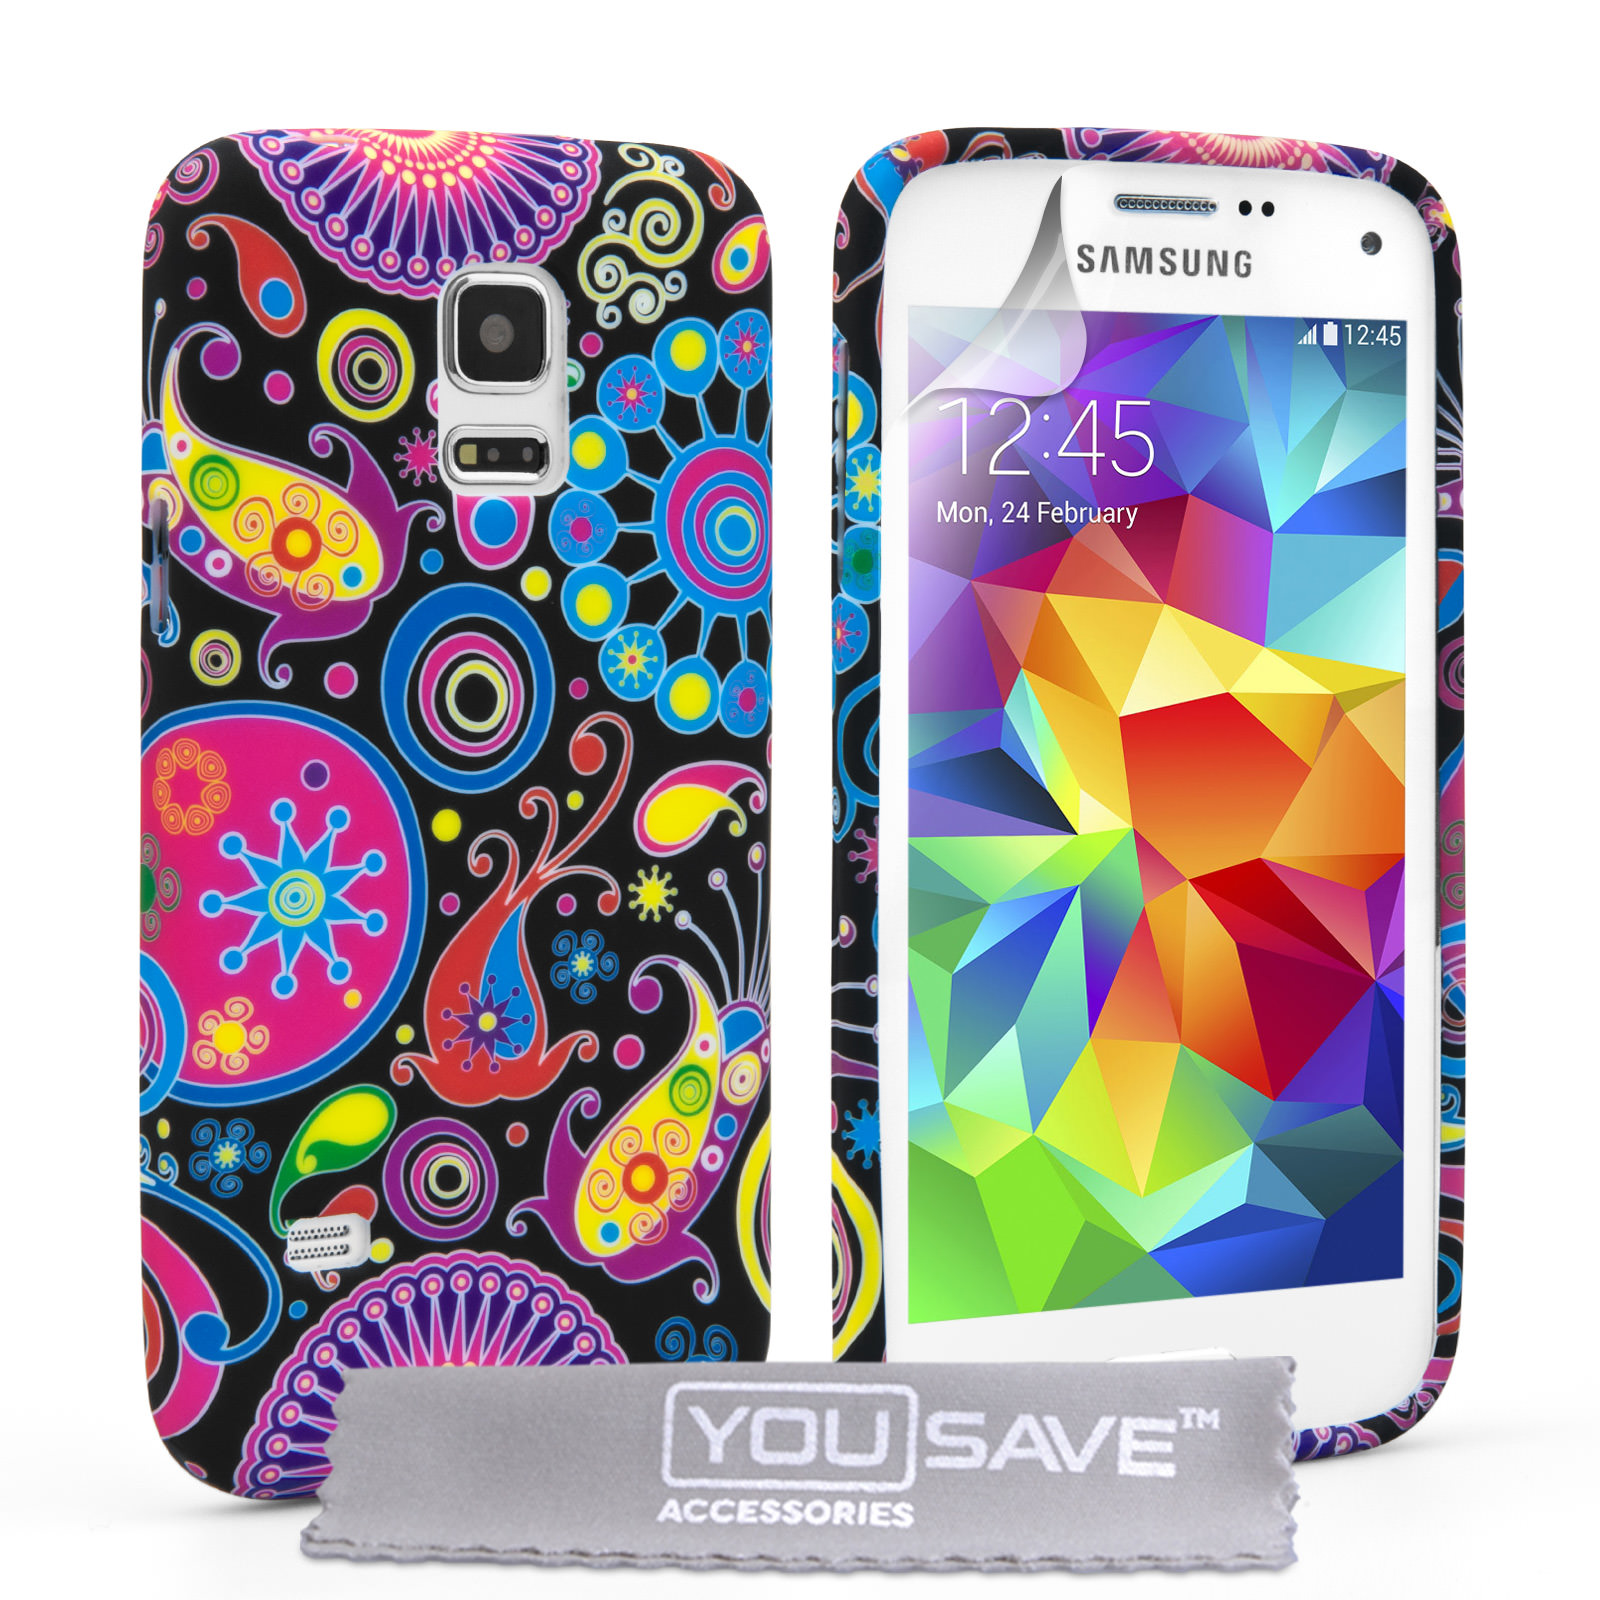 YouSave Accessories Samsung Galaxy S5 Mini Jellyfish Silicone Gel Case